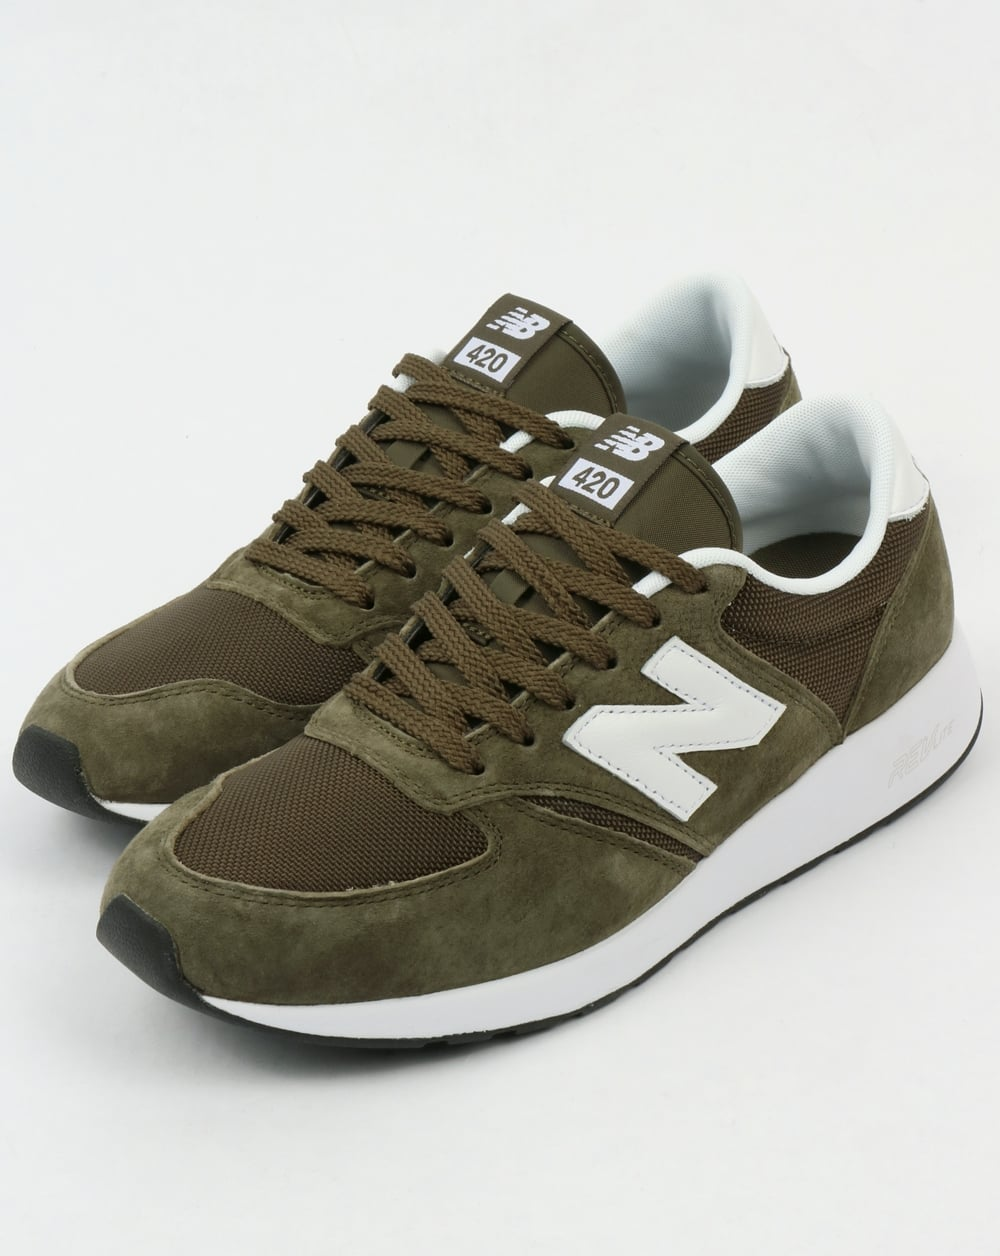 new balance 420 re engineered trainers olive green shoes. Black Bedroom Furniture Sets. Home Design Ideas